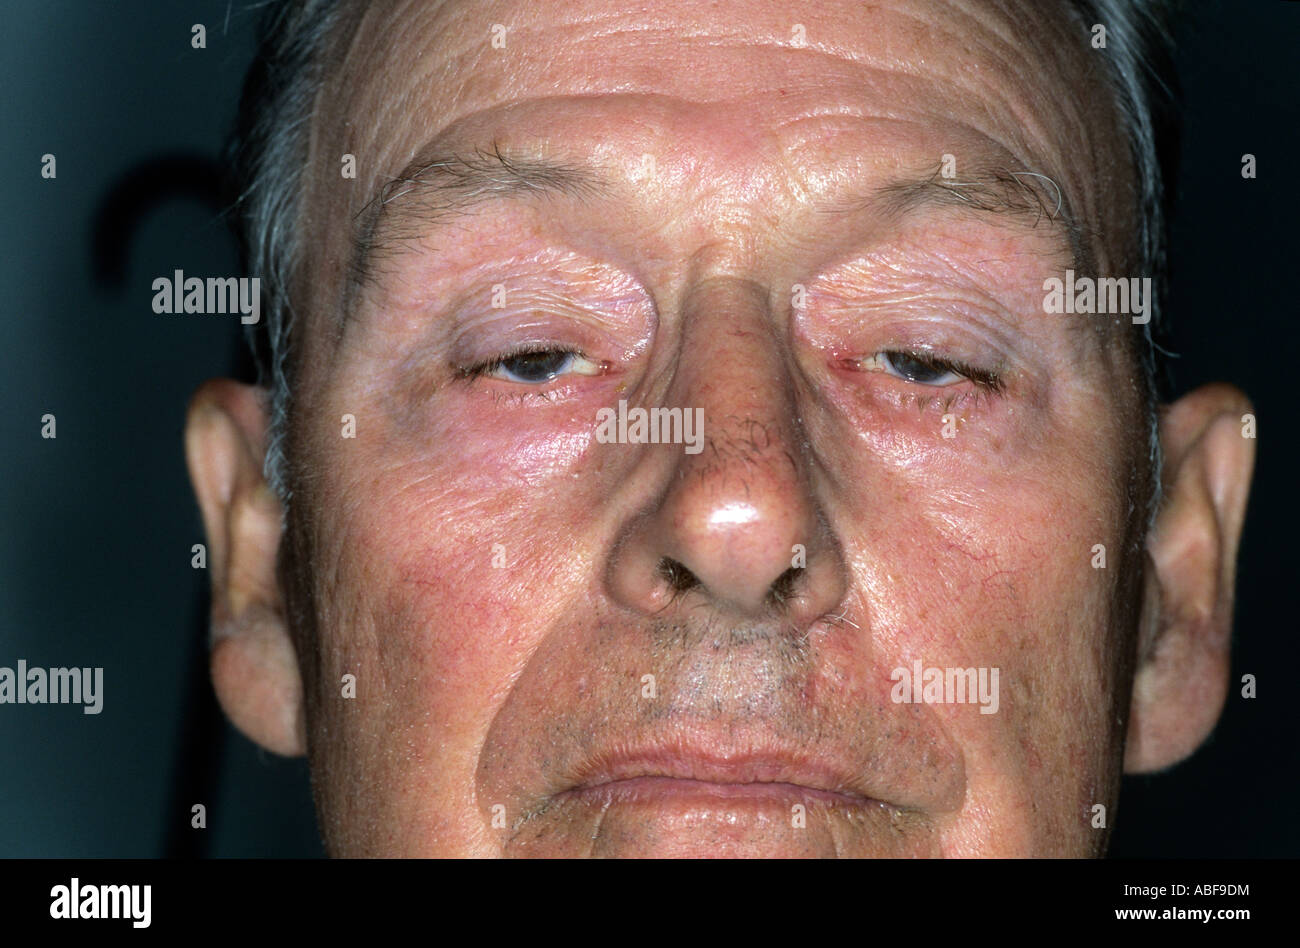 Bilateral ptosis with drooping of both upper eyelids & reduction in the width of the palpebral fissures - Stock Image